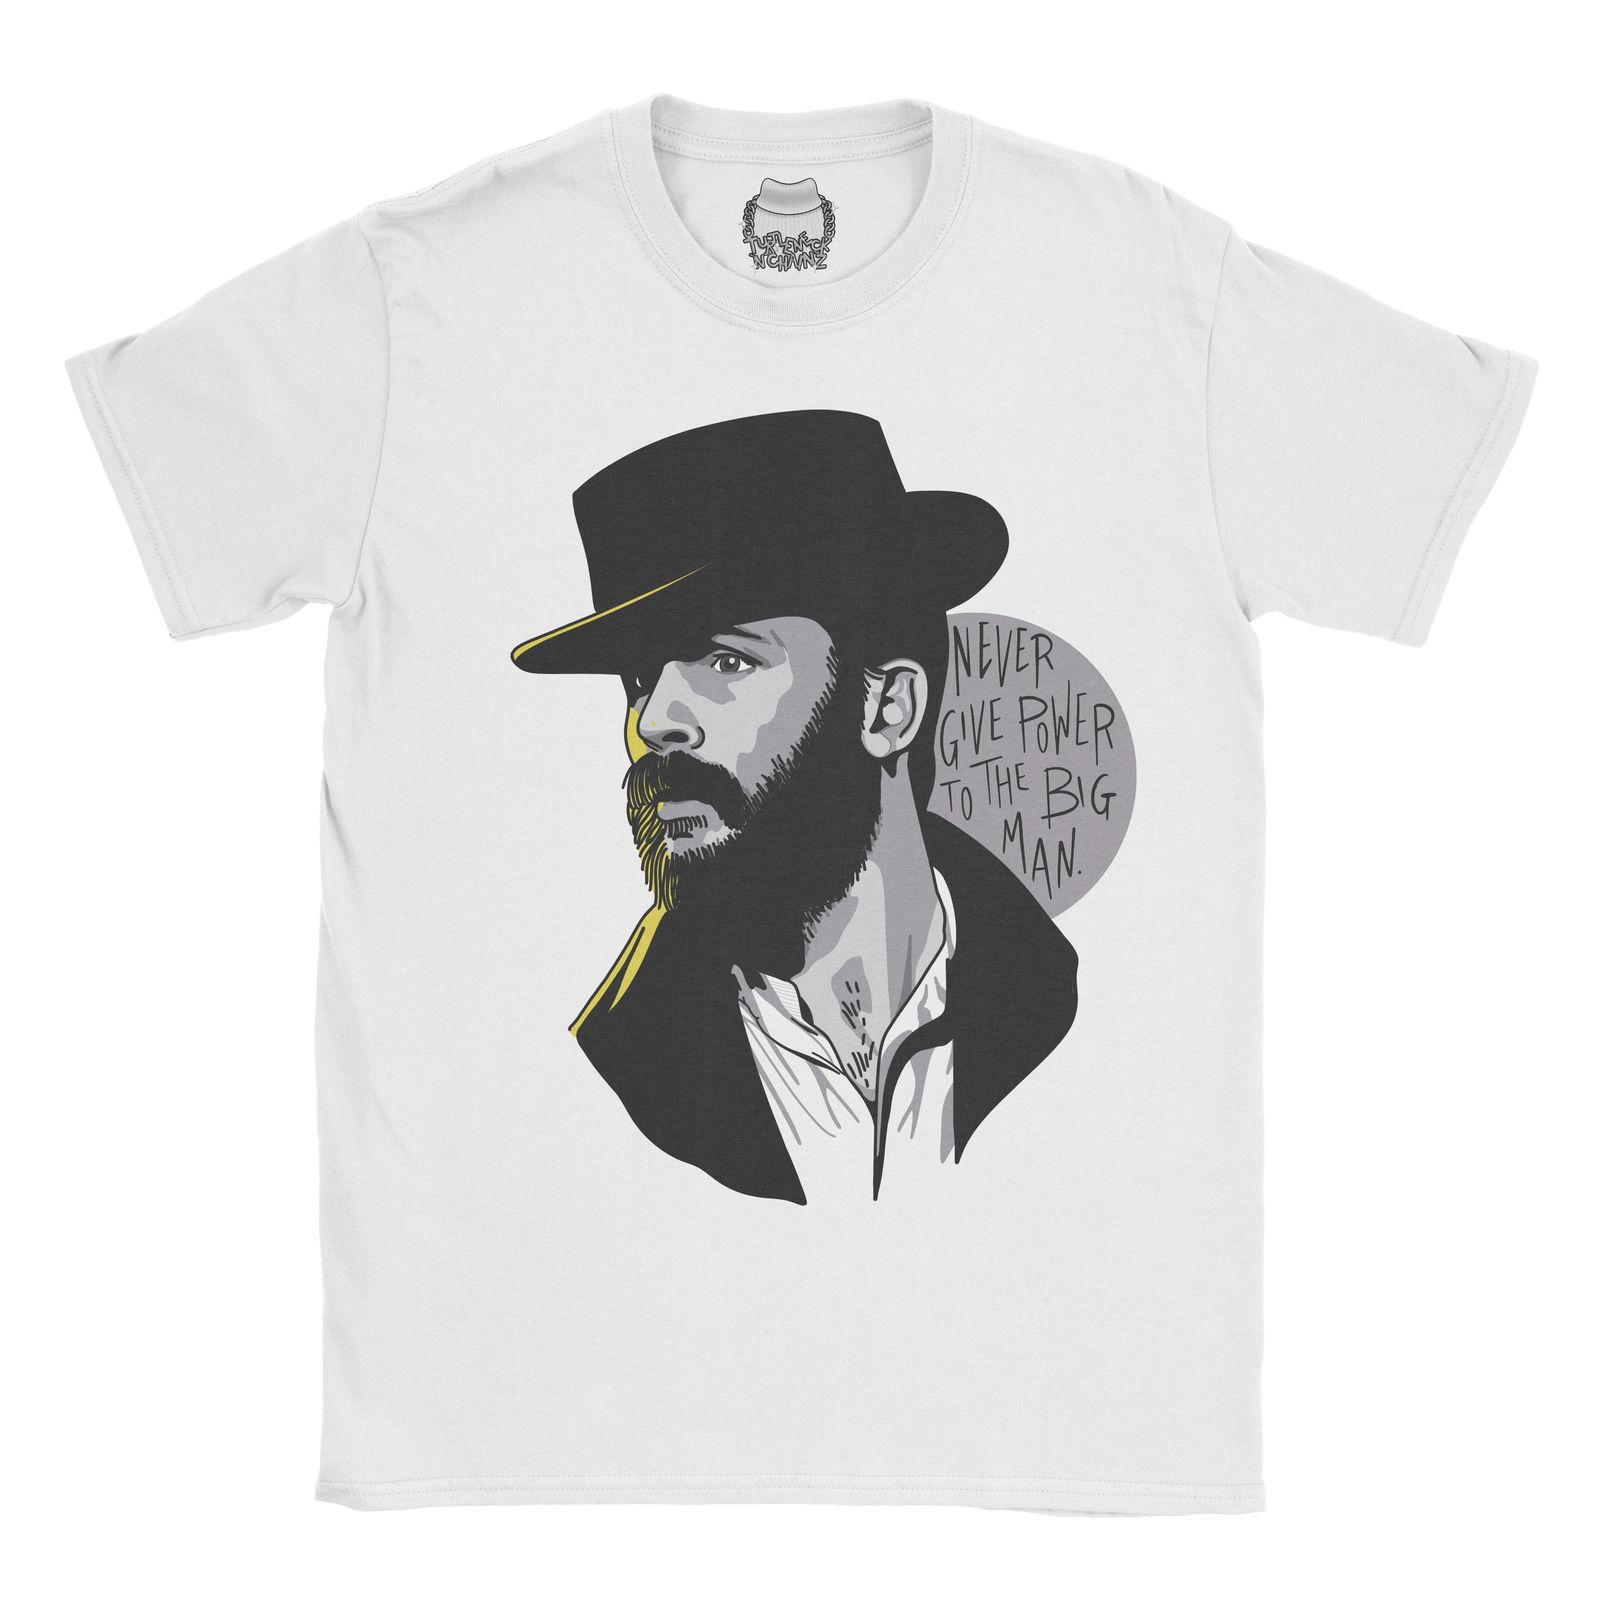 Peaky Blinders T-shirt Alfie Solomons Fan de la BBC Tom Hardy Top Tee Hommes Vêtements unisexe en denim camiseta t-shirt coupe-vent cattt